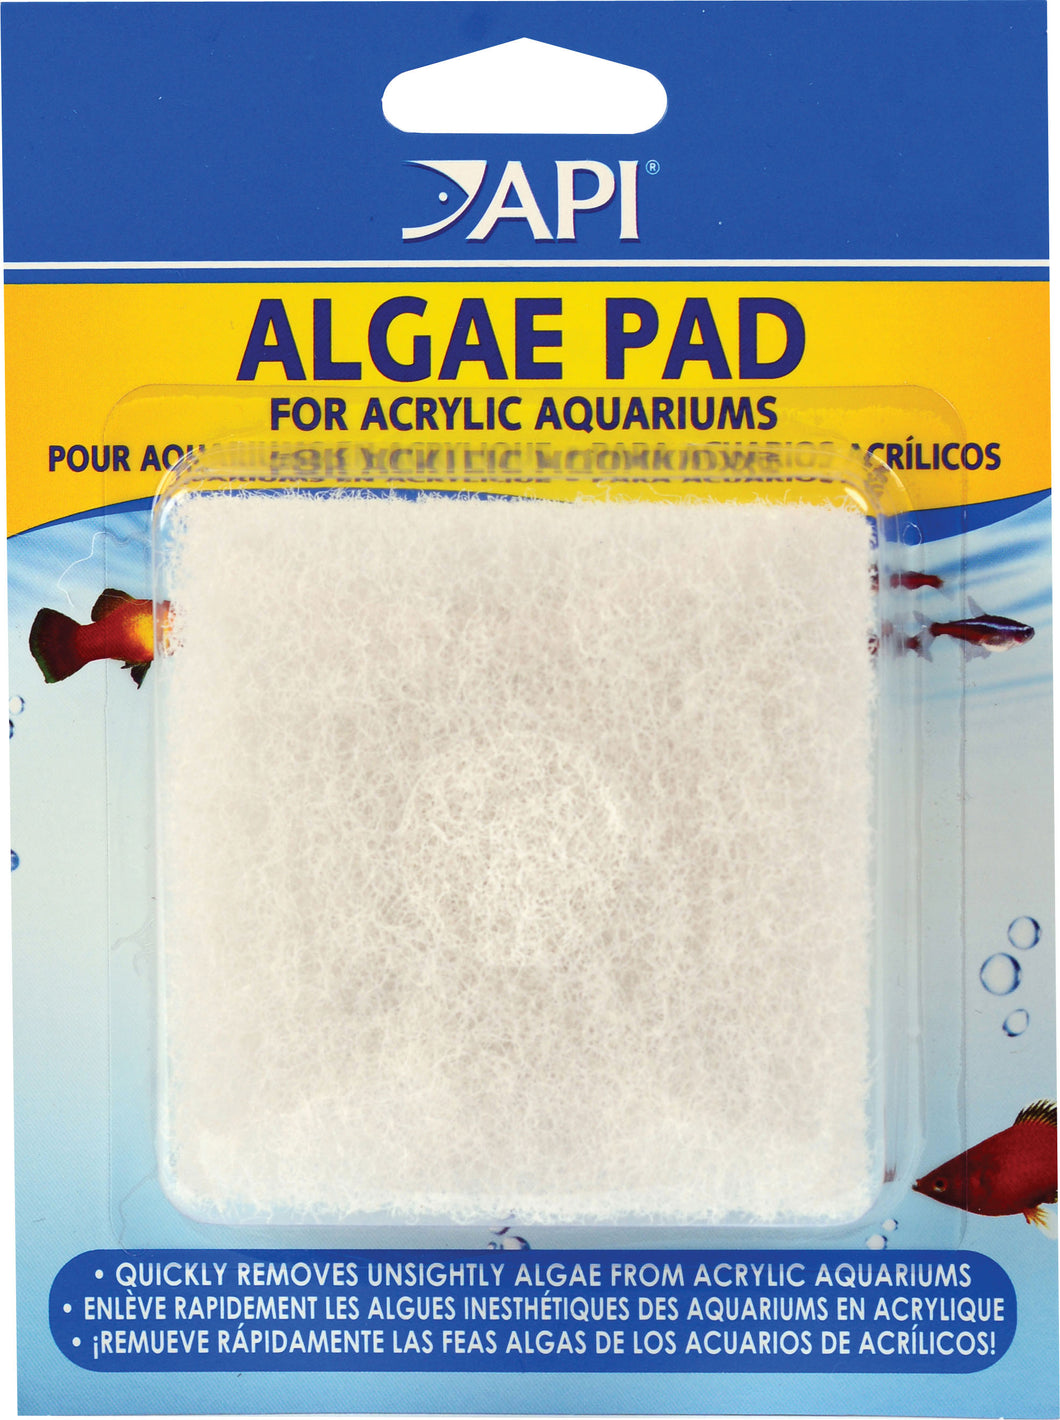 Algae Pad For Acrylic Aquariums